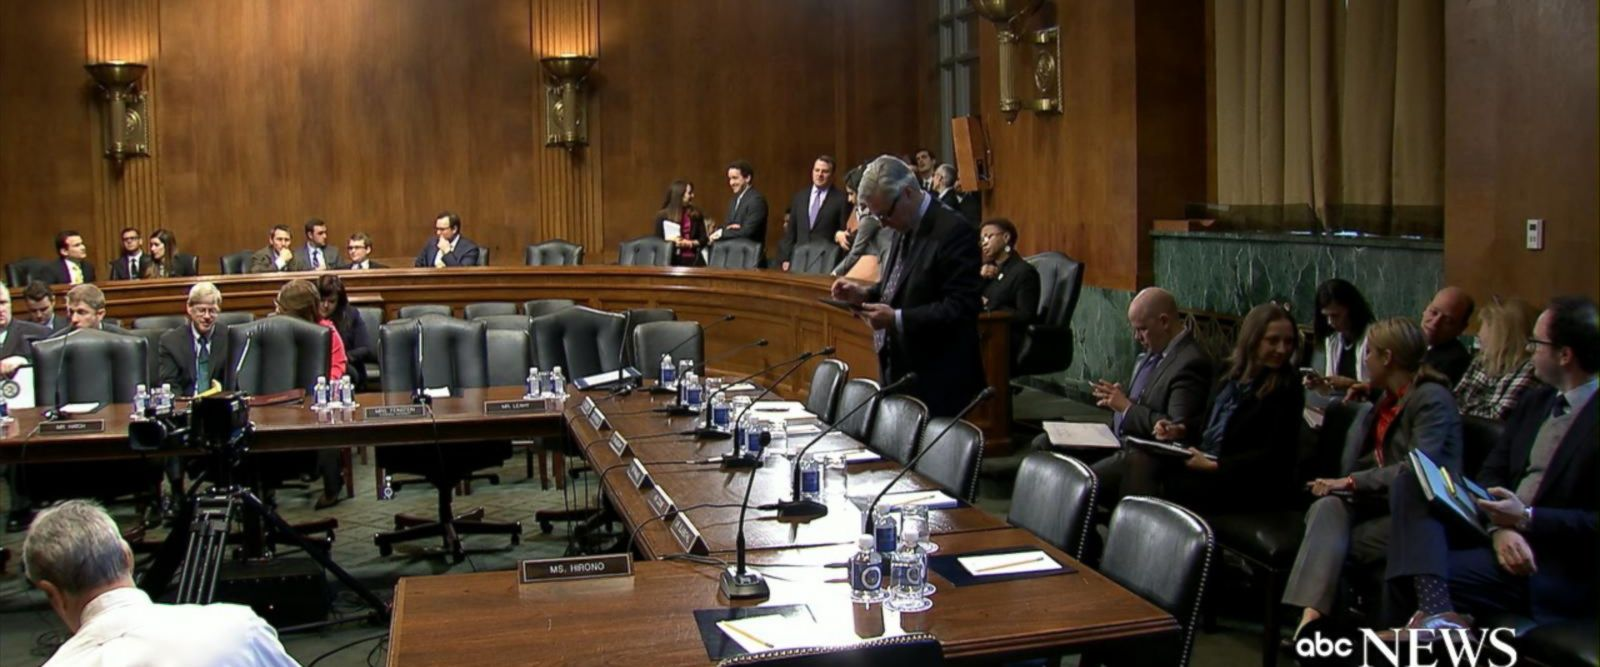 VIDEO: What to Expect in the Senate Confirmation Hearings for HHS and OMB